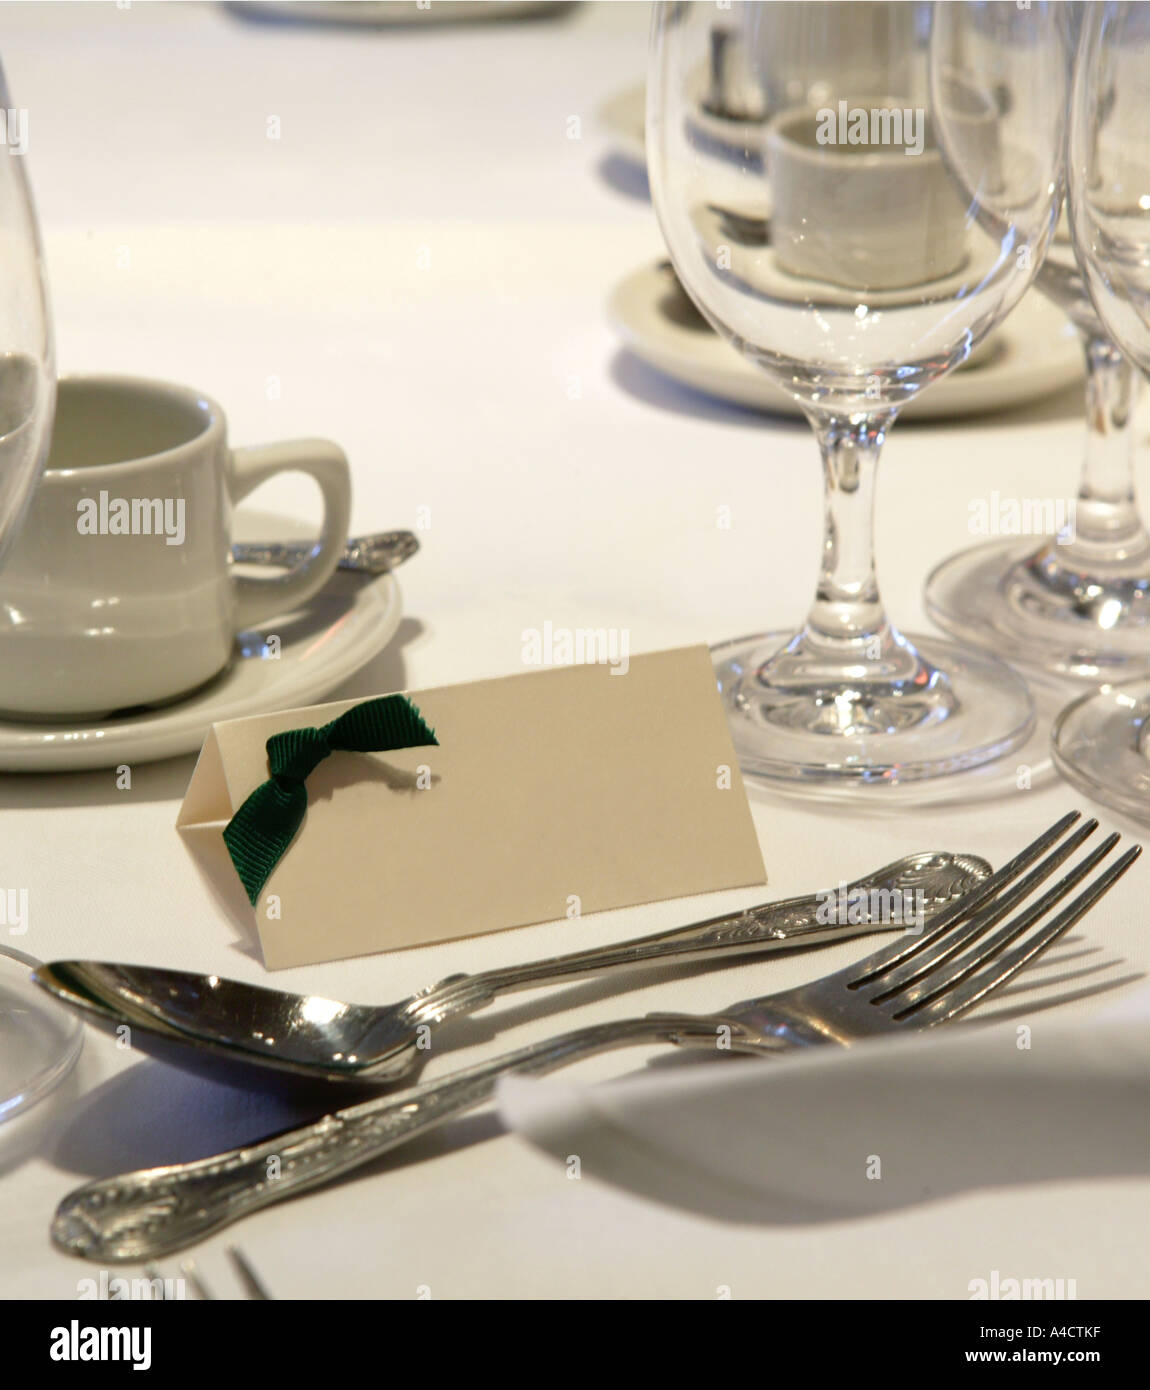 table setting including a blank name card and a knife fork spoon dinner plate and glasses on a white table cloth with upright na & table setting including a blank name card and a knife fork spoon ...